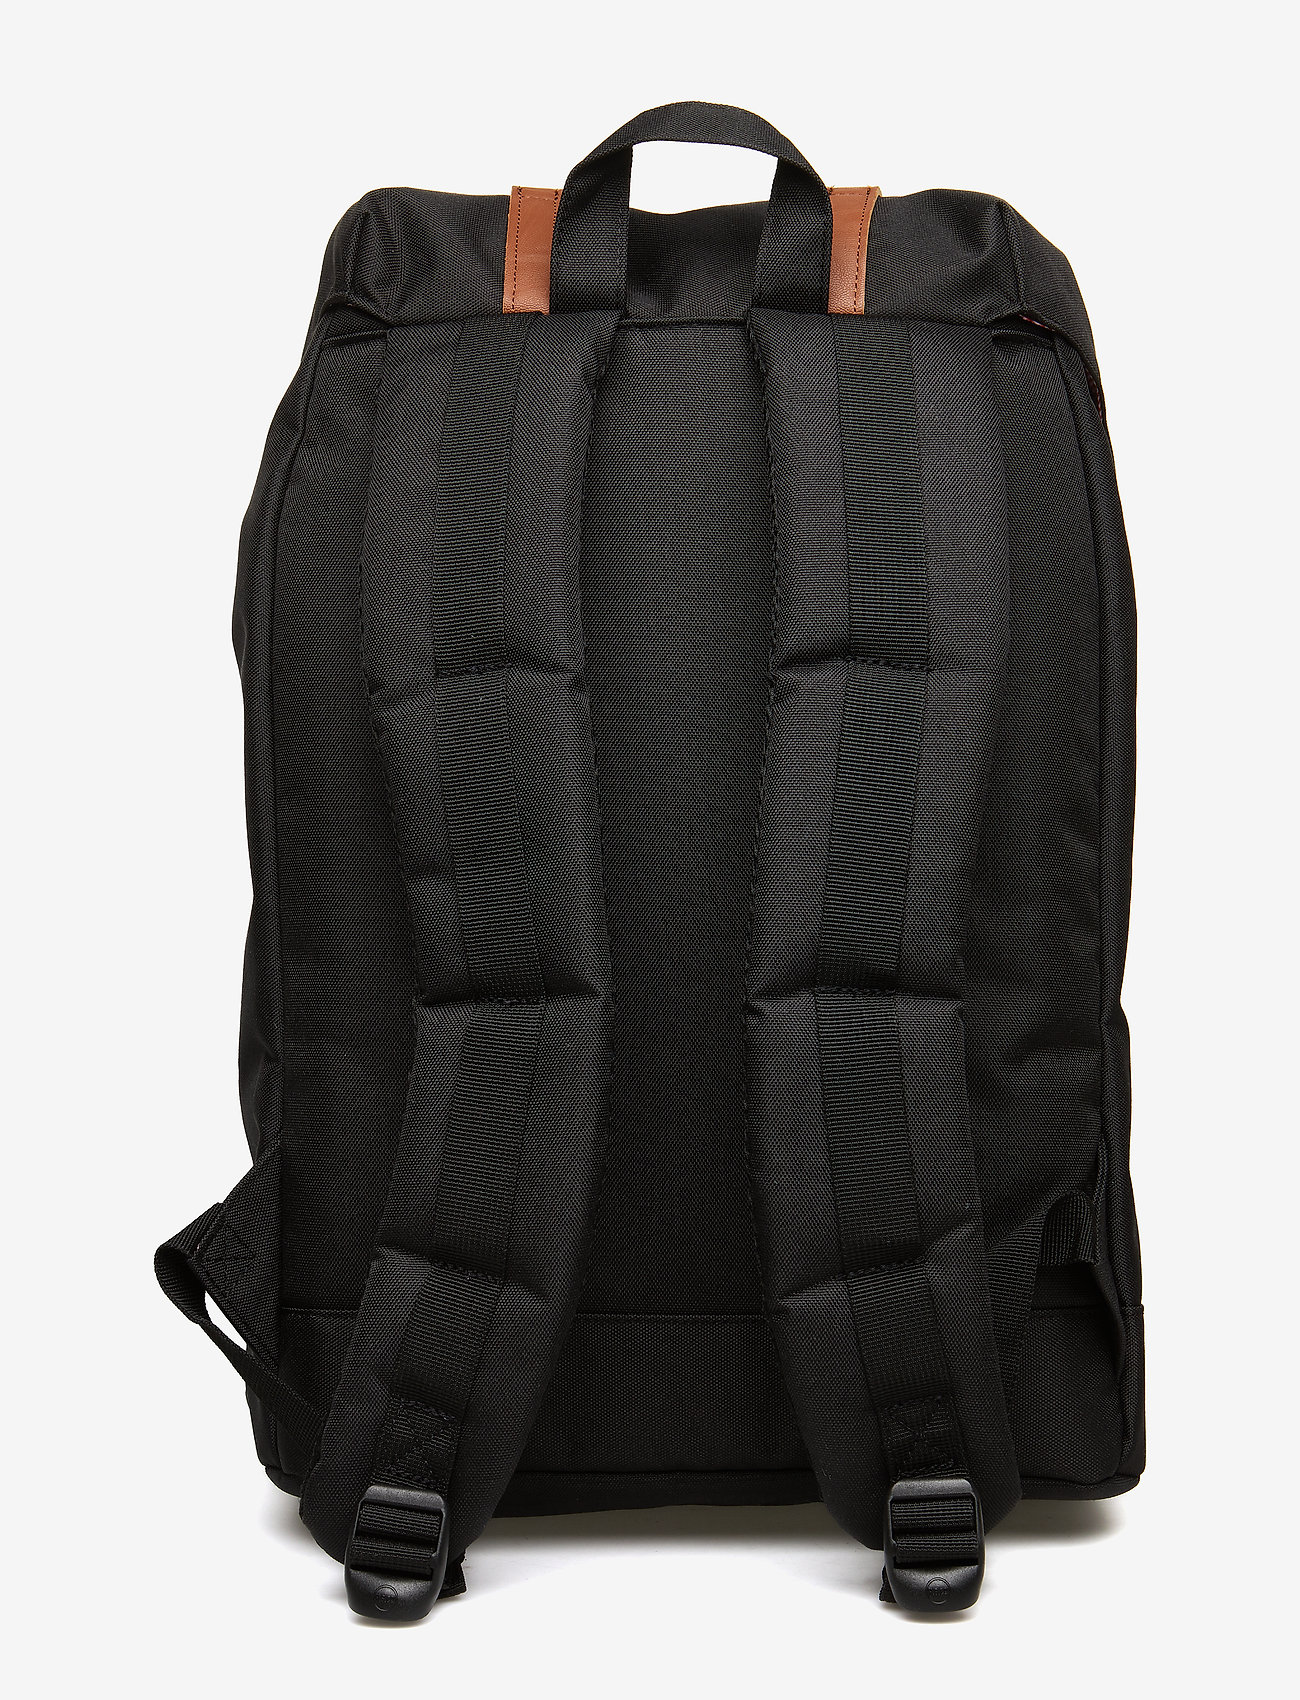 Retreat - Black (Black) - Herschel 7IzXSh